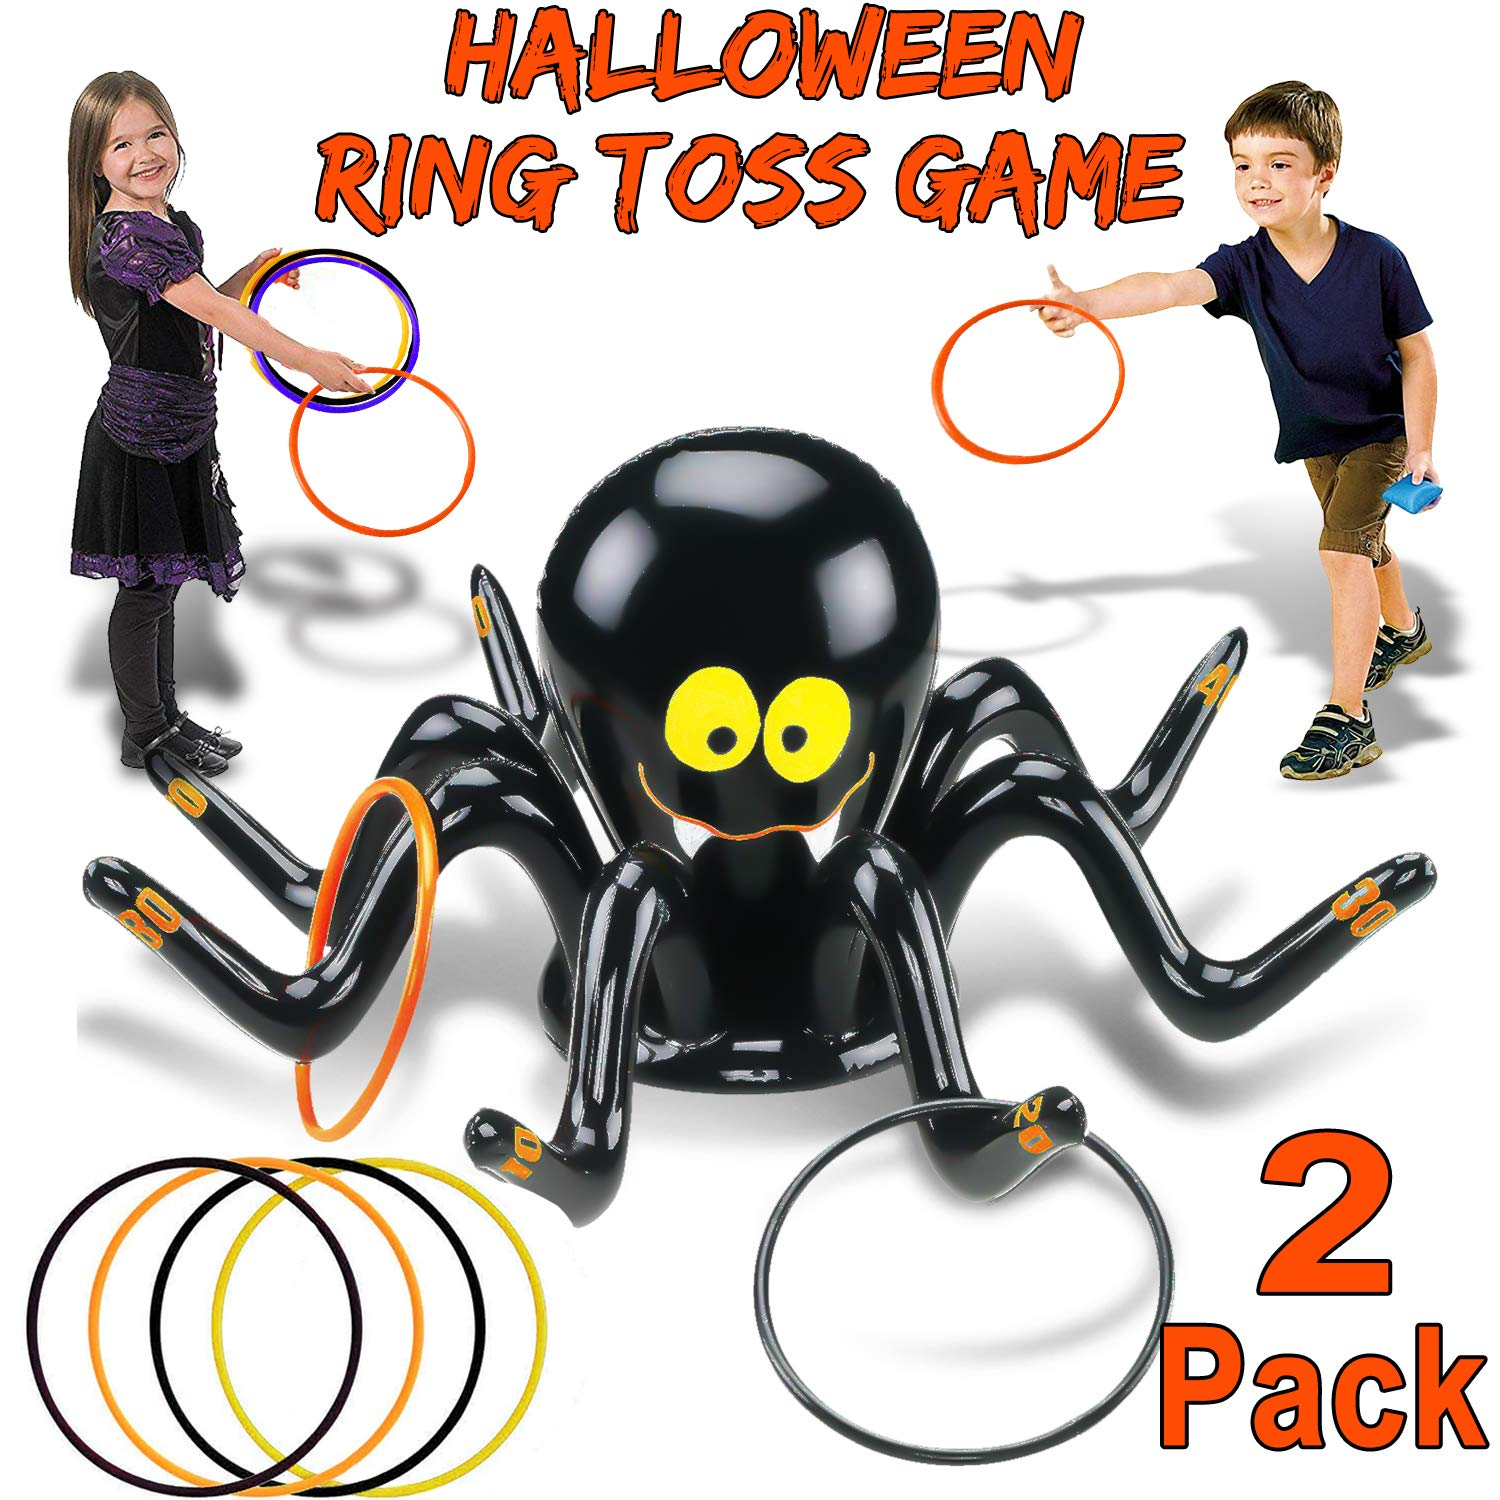 2 Pack Inflatable Spider Witch Hat Ring Toss Game Halloween Party Games for Kids Adult Carnival Party Outdoor Activities Game Spider Toys or Halloween School Holiday Party Favors (2 Spiders + 8 Ring) by AMENON